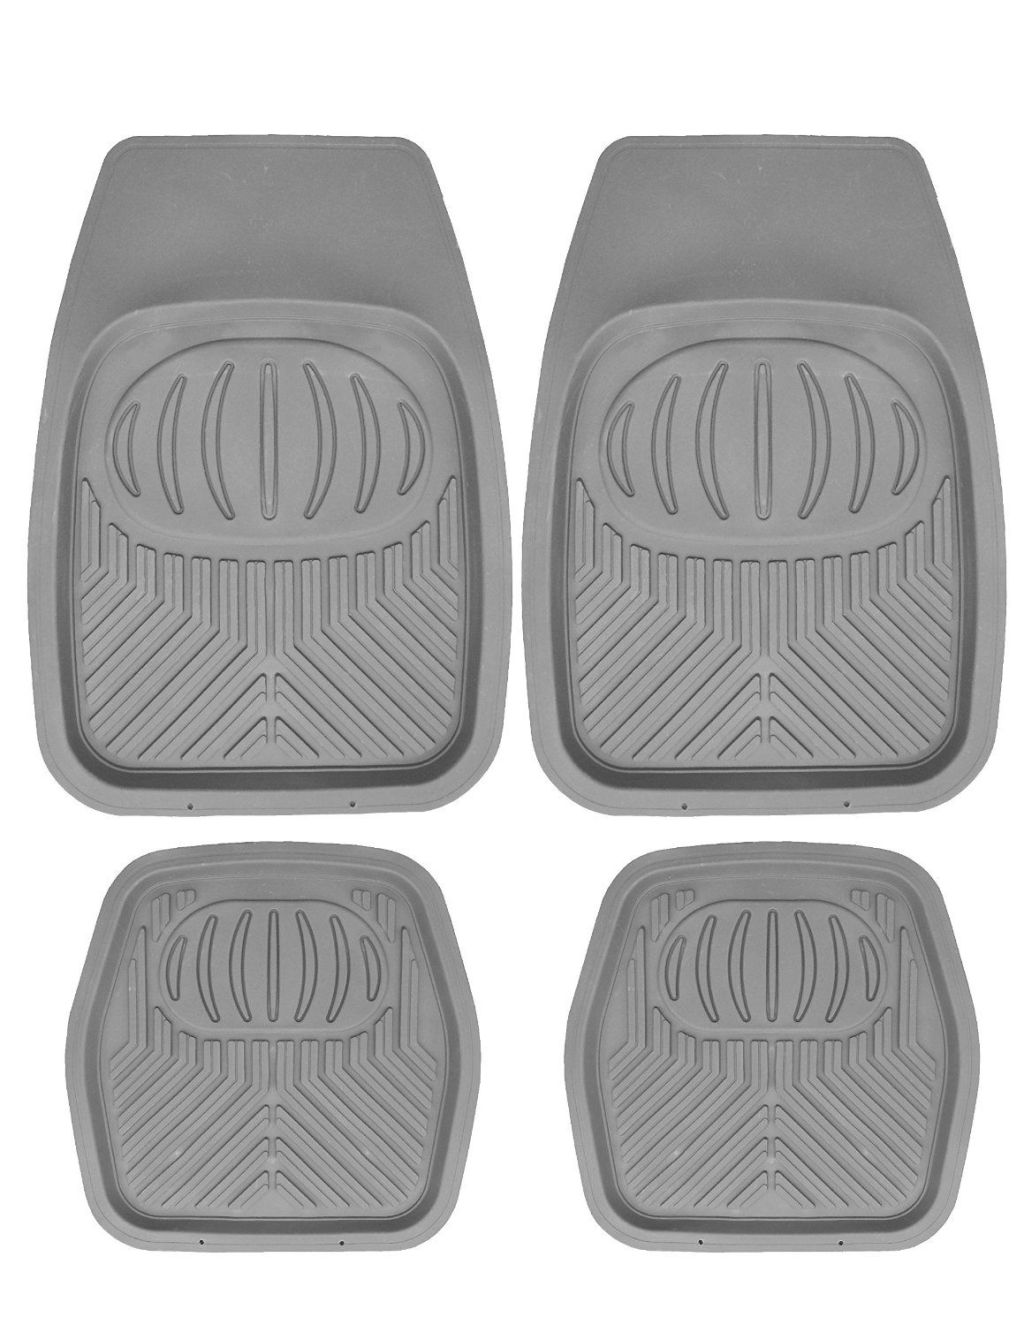 14 best rubber floor mats of rubber auto floor mats for your car or truck